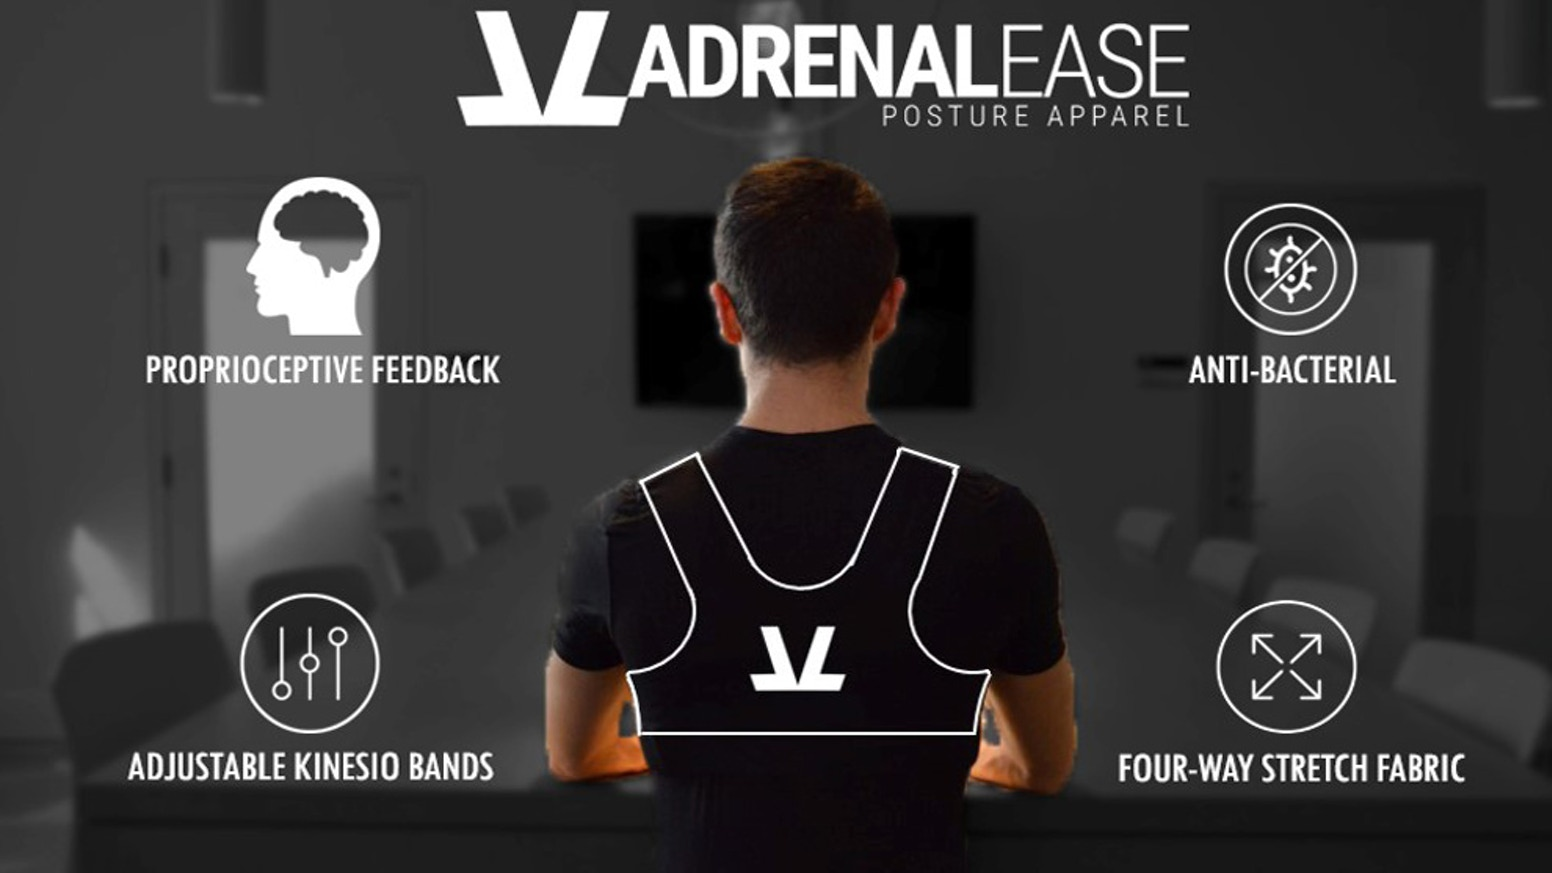 Adrenalease Posture Apparel was engineered by Kinesiologists to improve posture & gently remind you to keep an upright neutral spine.